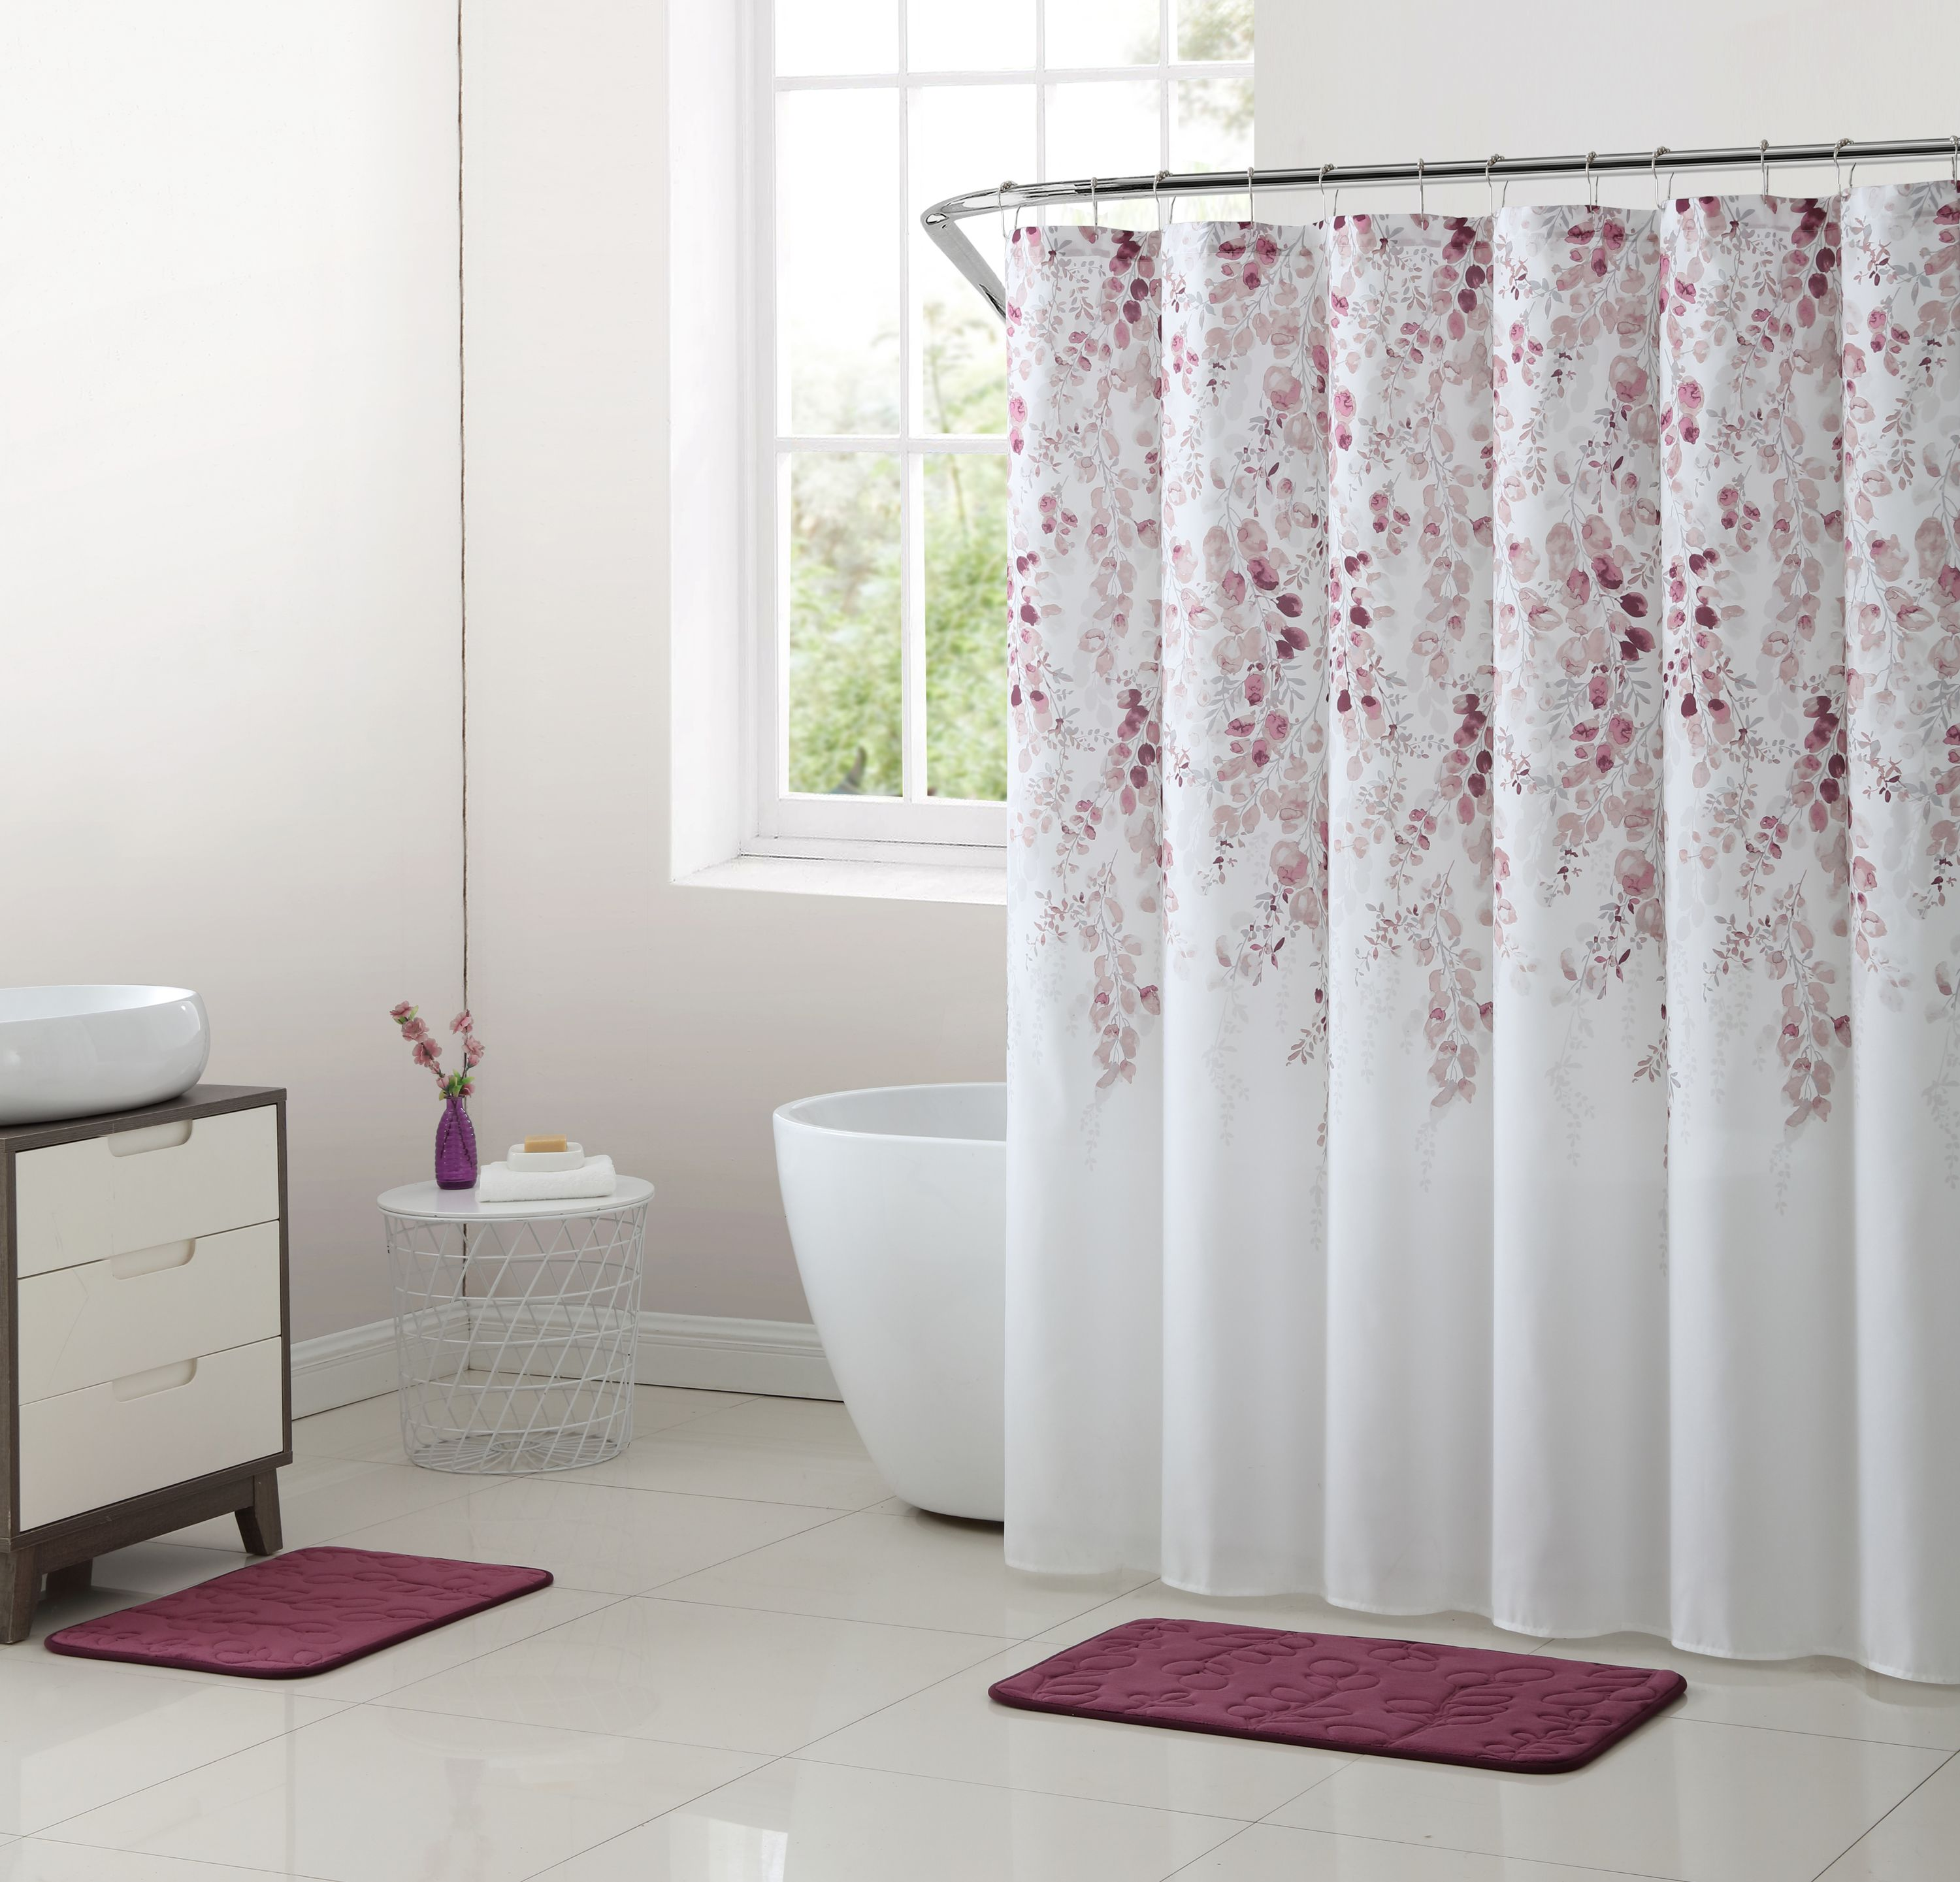 Home Shower curtain sets, Ombre shower curtain, Fabric